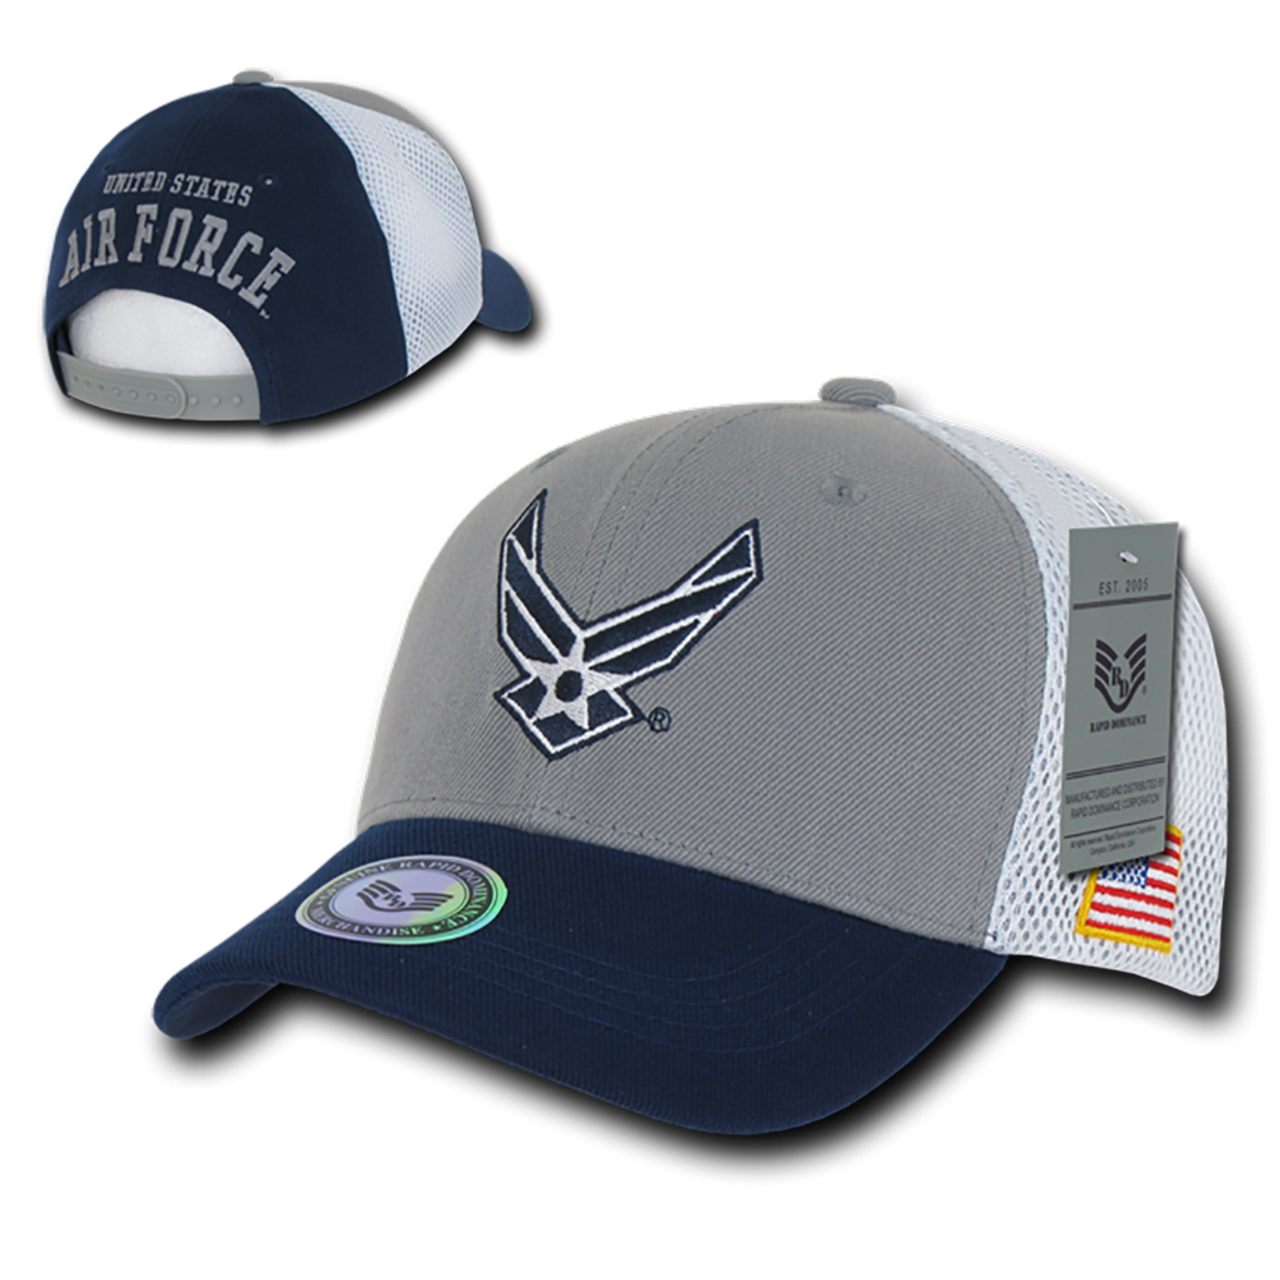 6cf68289 S010 - Military Hat - US Air Force Wings Cap - Air Mesh Cotton - Blue/Gray  - USMILITARYHATS.COM